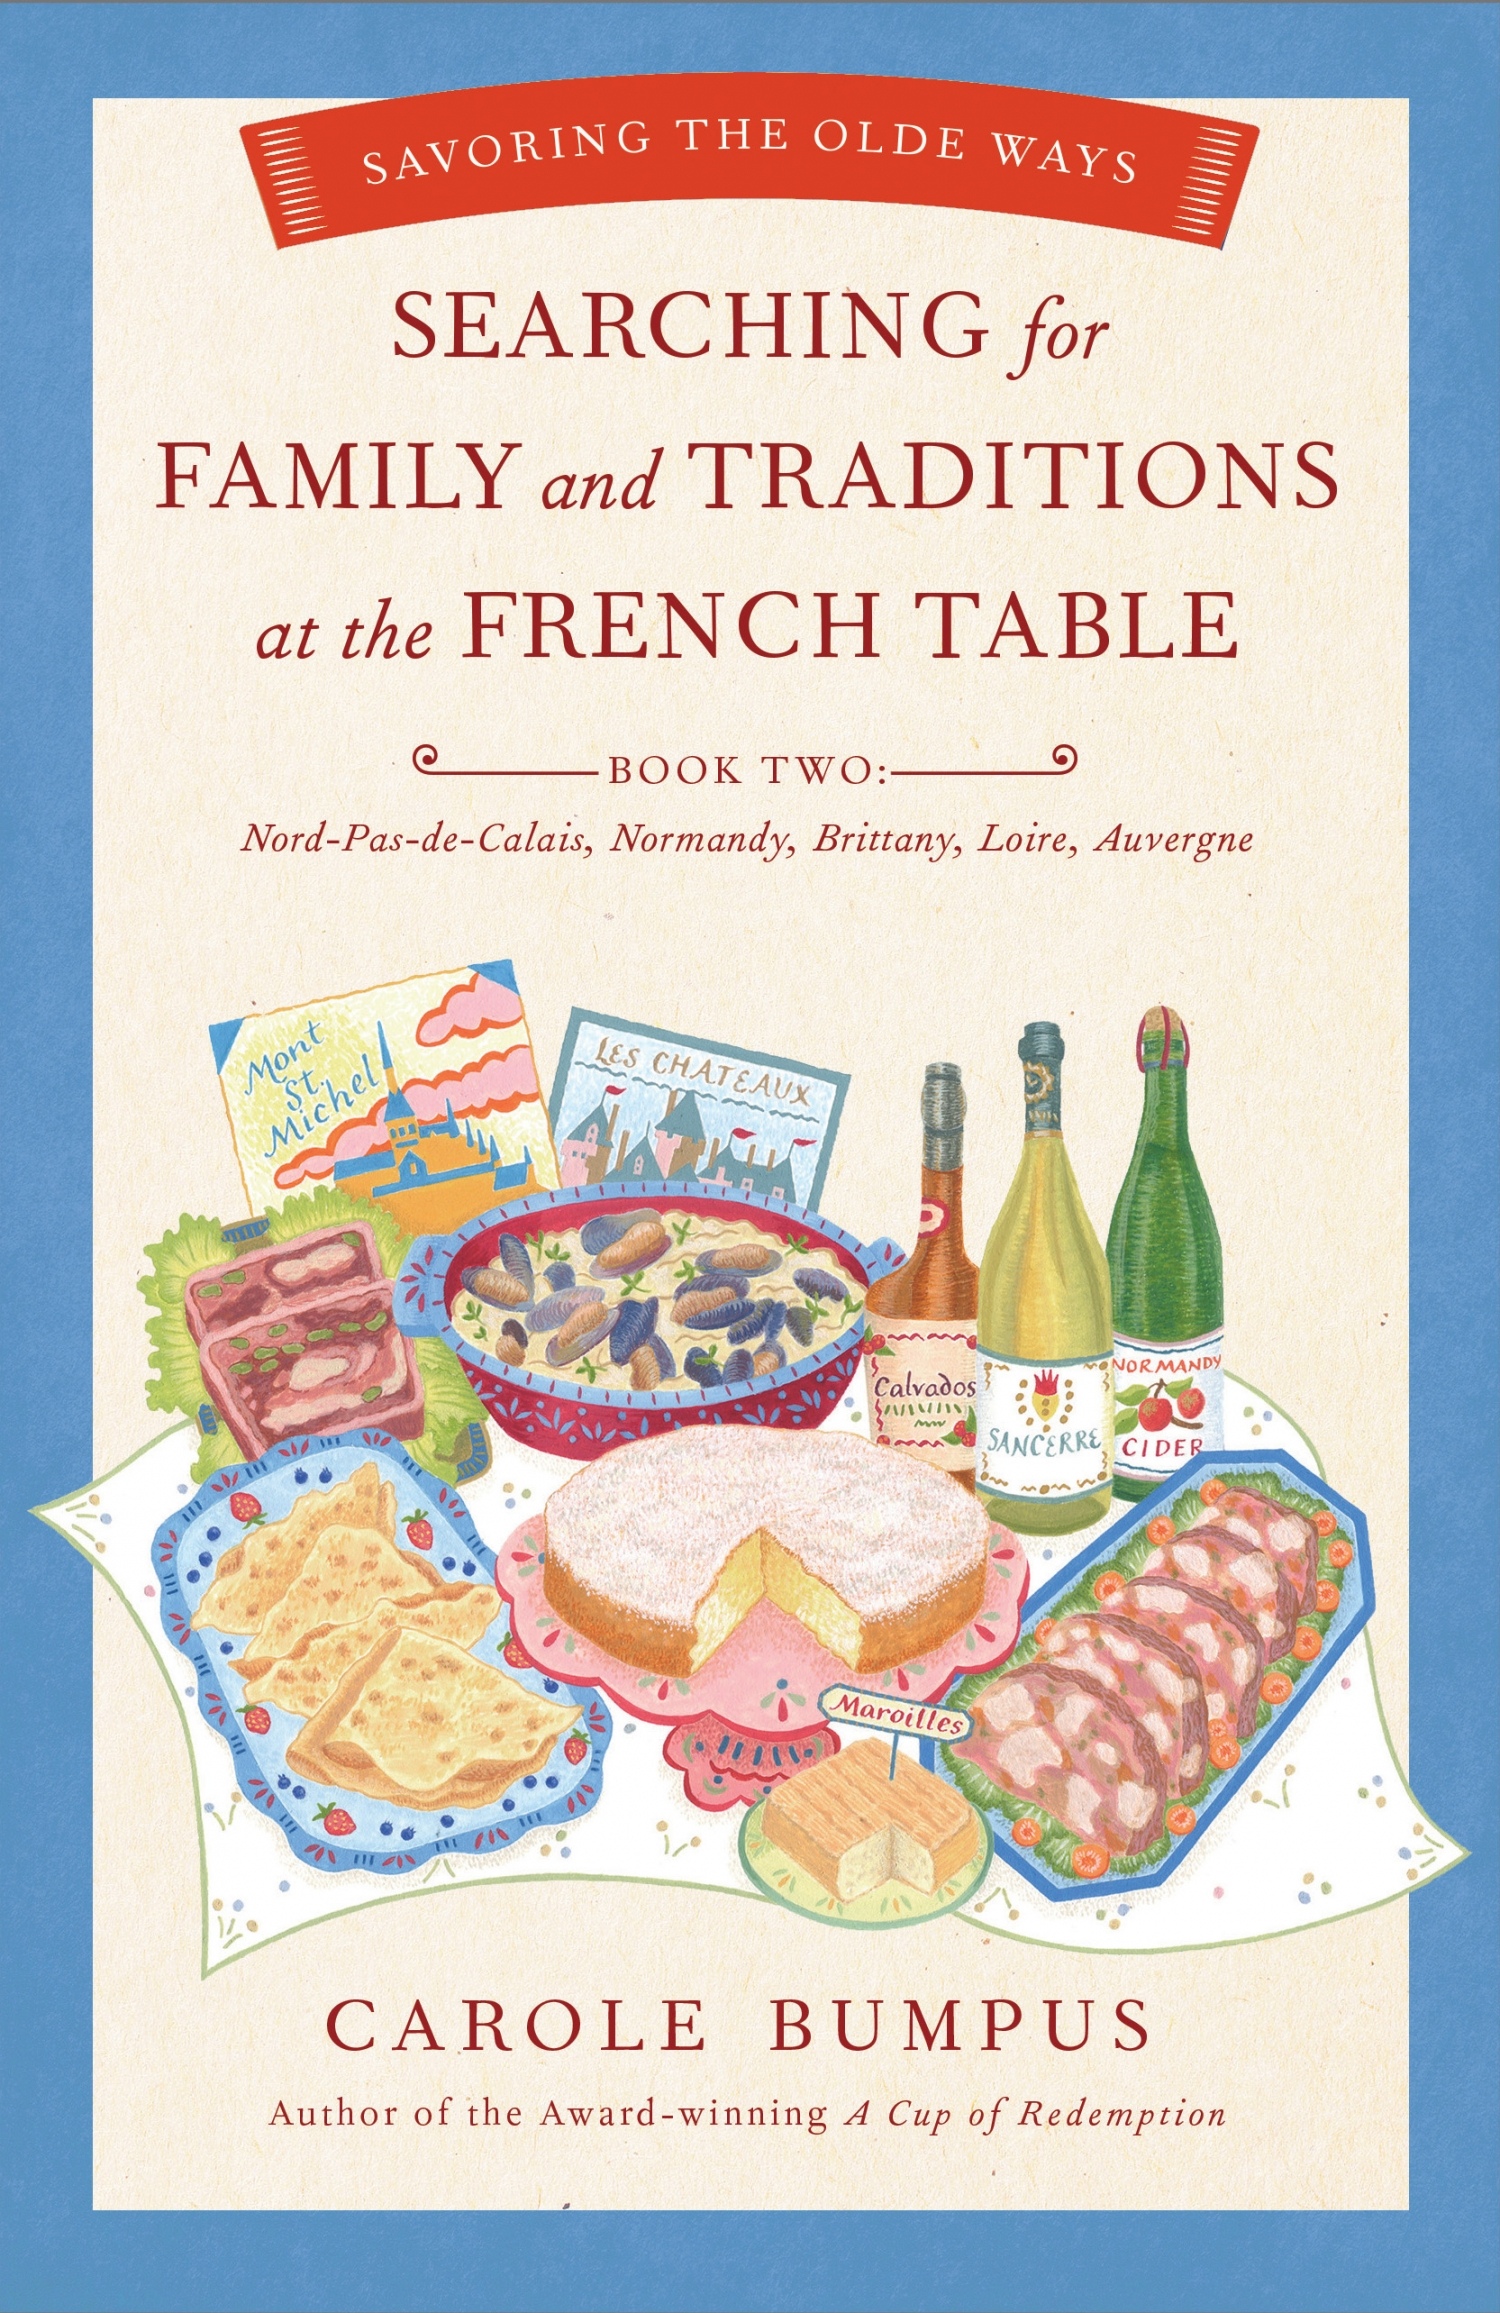 Searching for Family and Traditions at the French Table, Book Two (Nord-Pas-de-Calais, Normandy, Brittany, Loire, Auvergne)